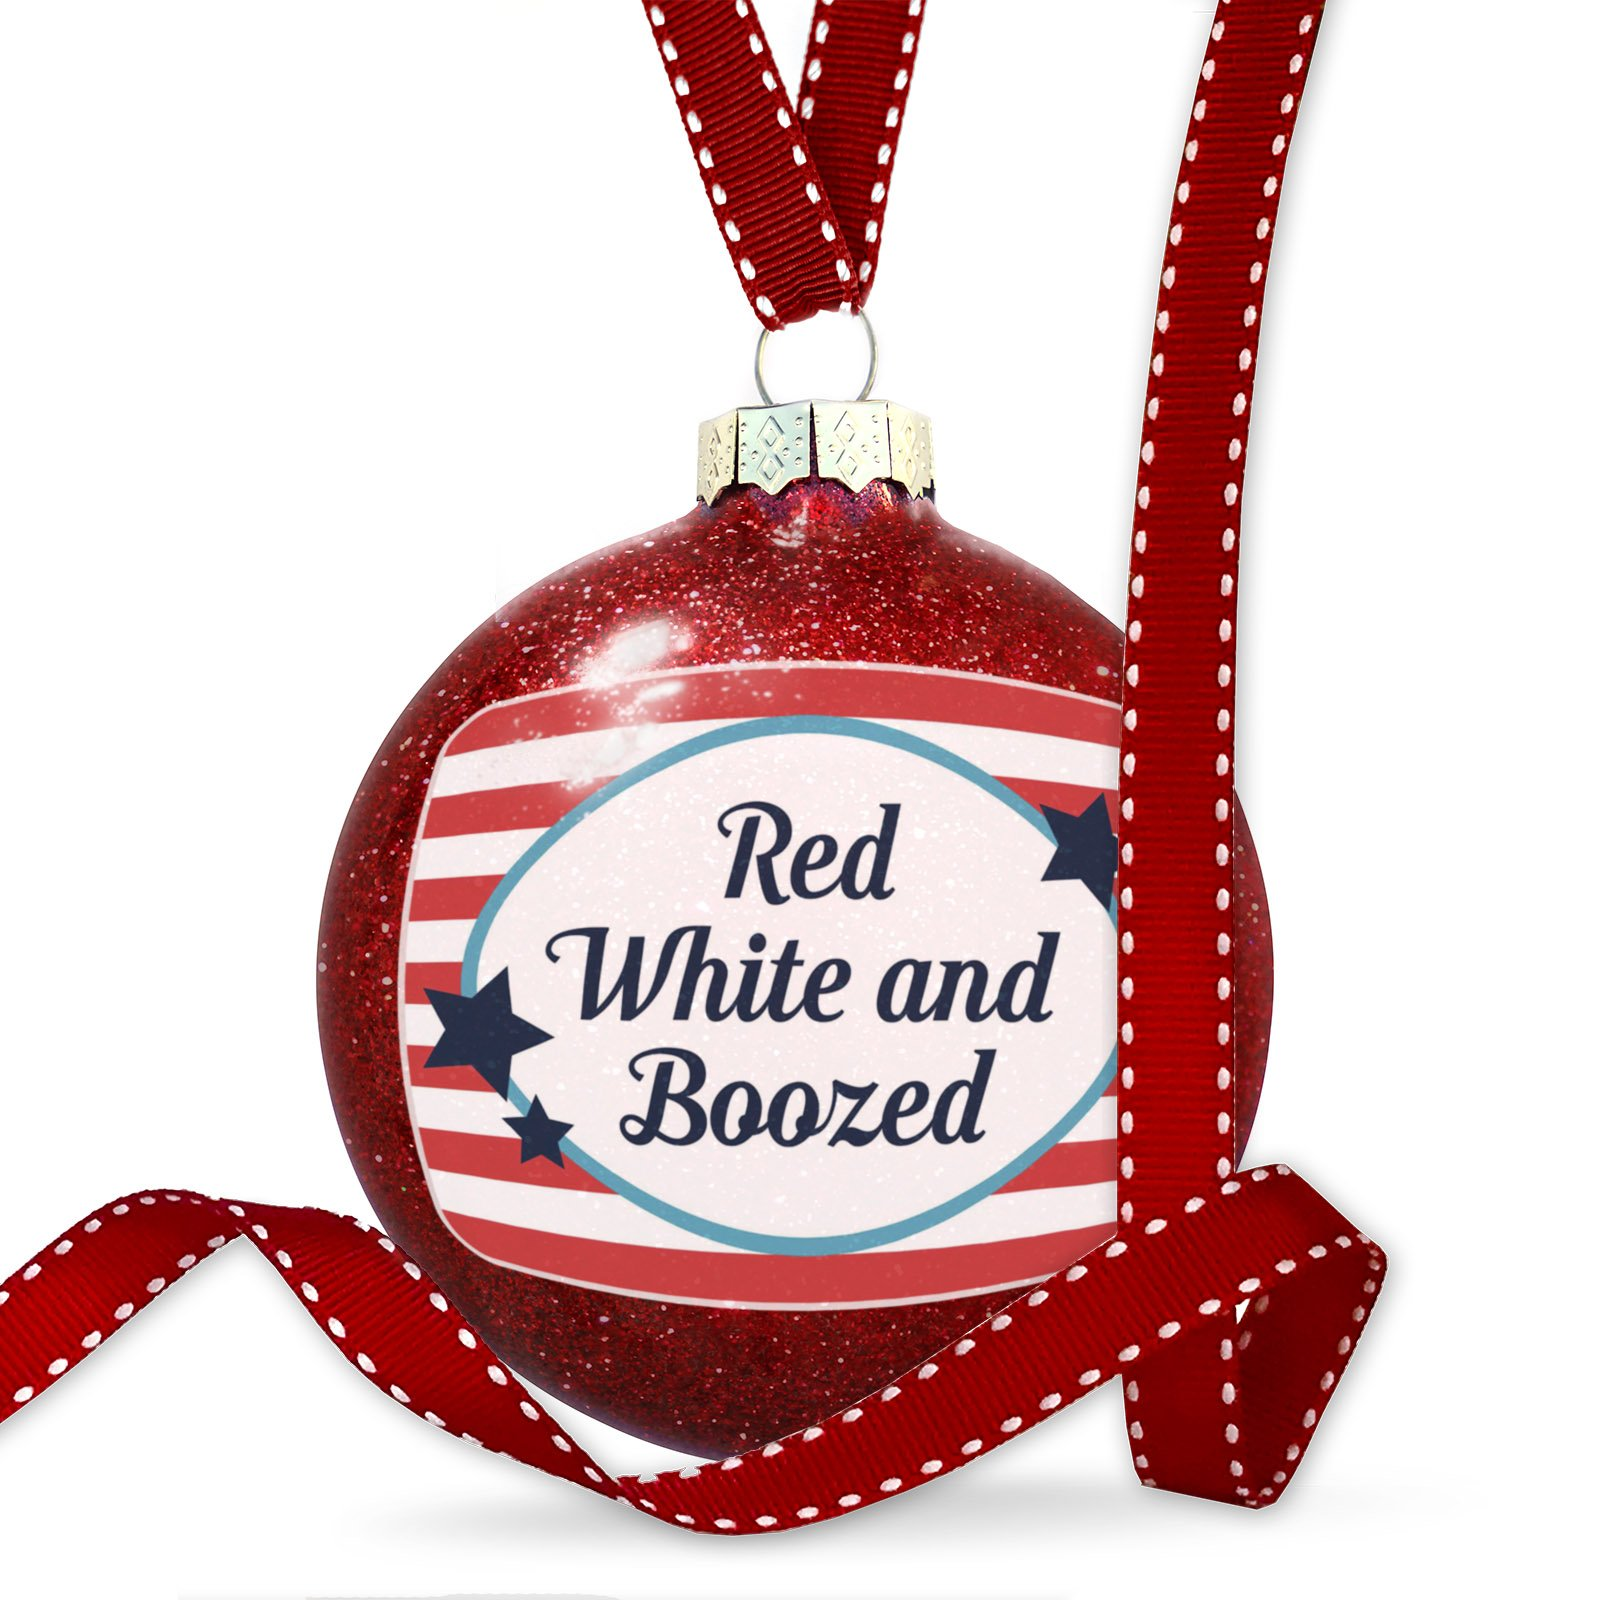 Christmas Decoration Red White and Boozed Fourth of July America Stars and Stripes Ornament